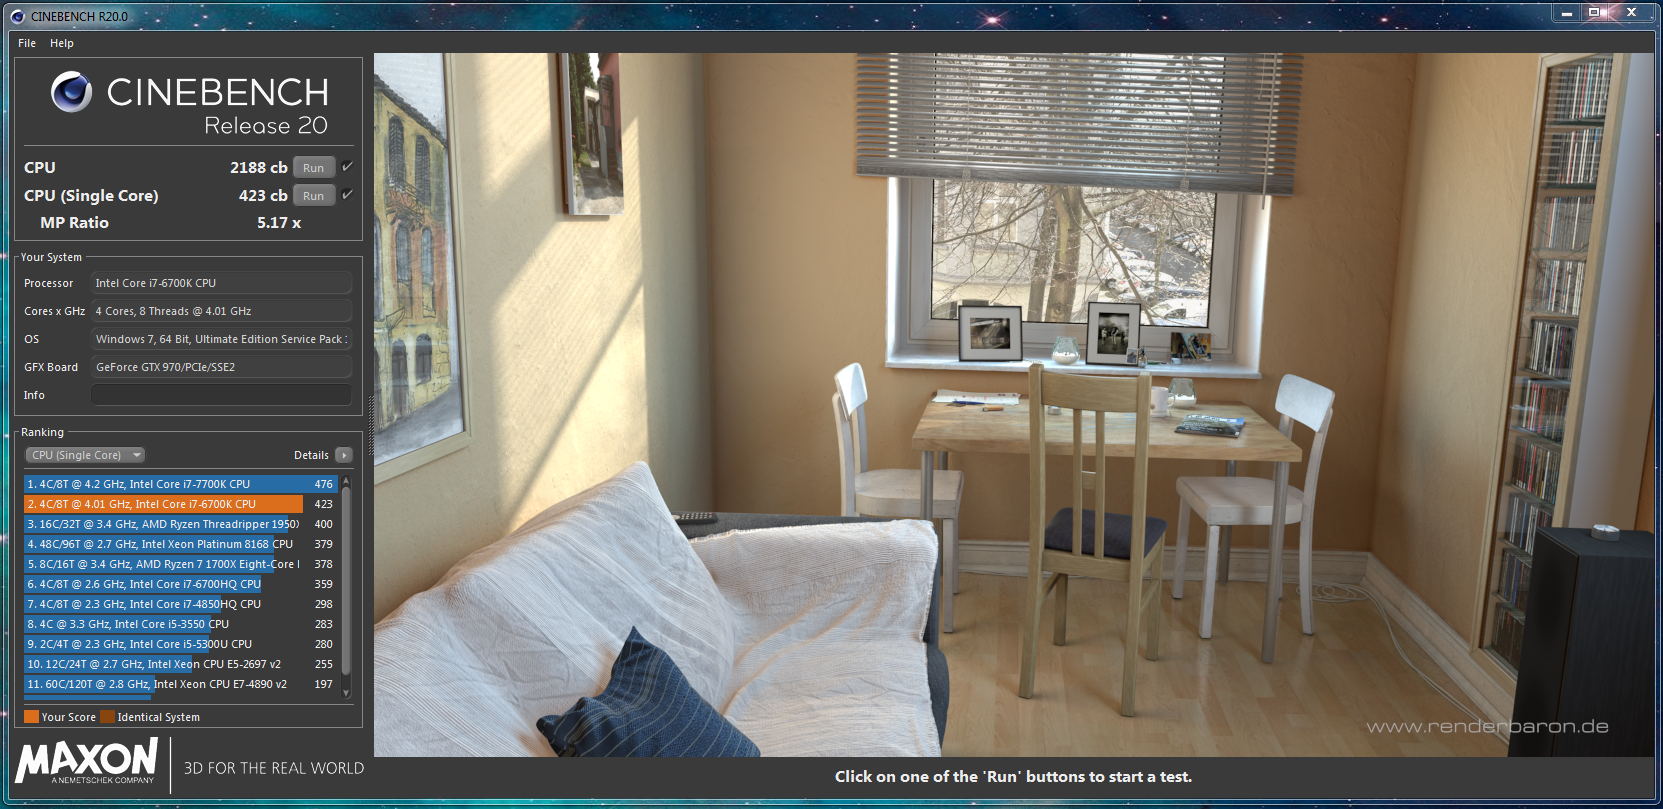 cinebench20 stock 3-9-19.png